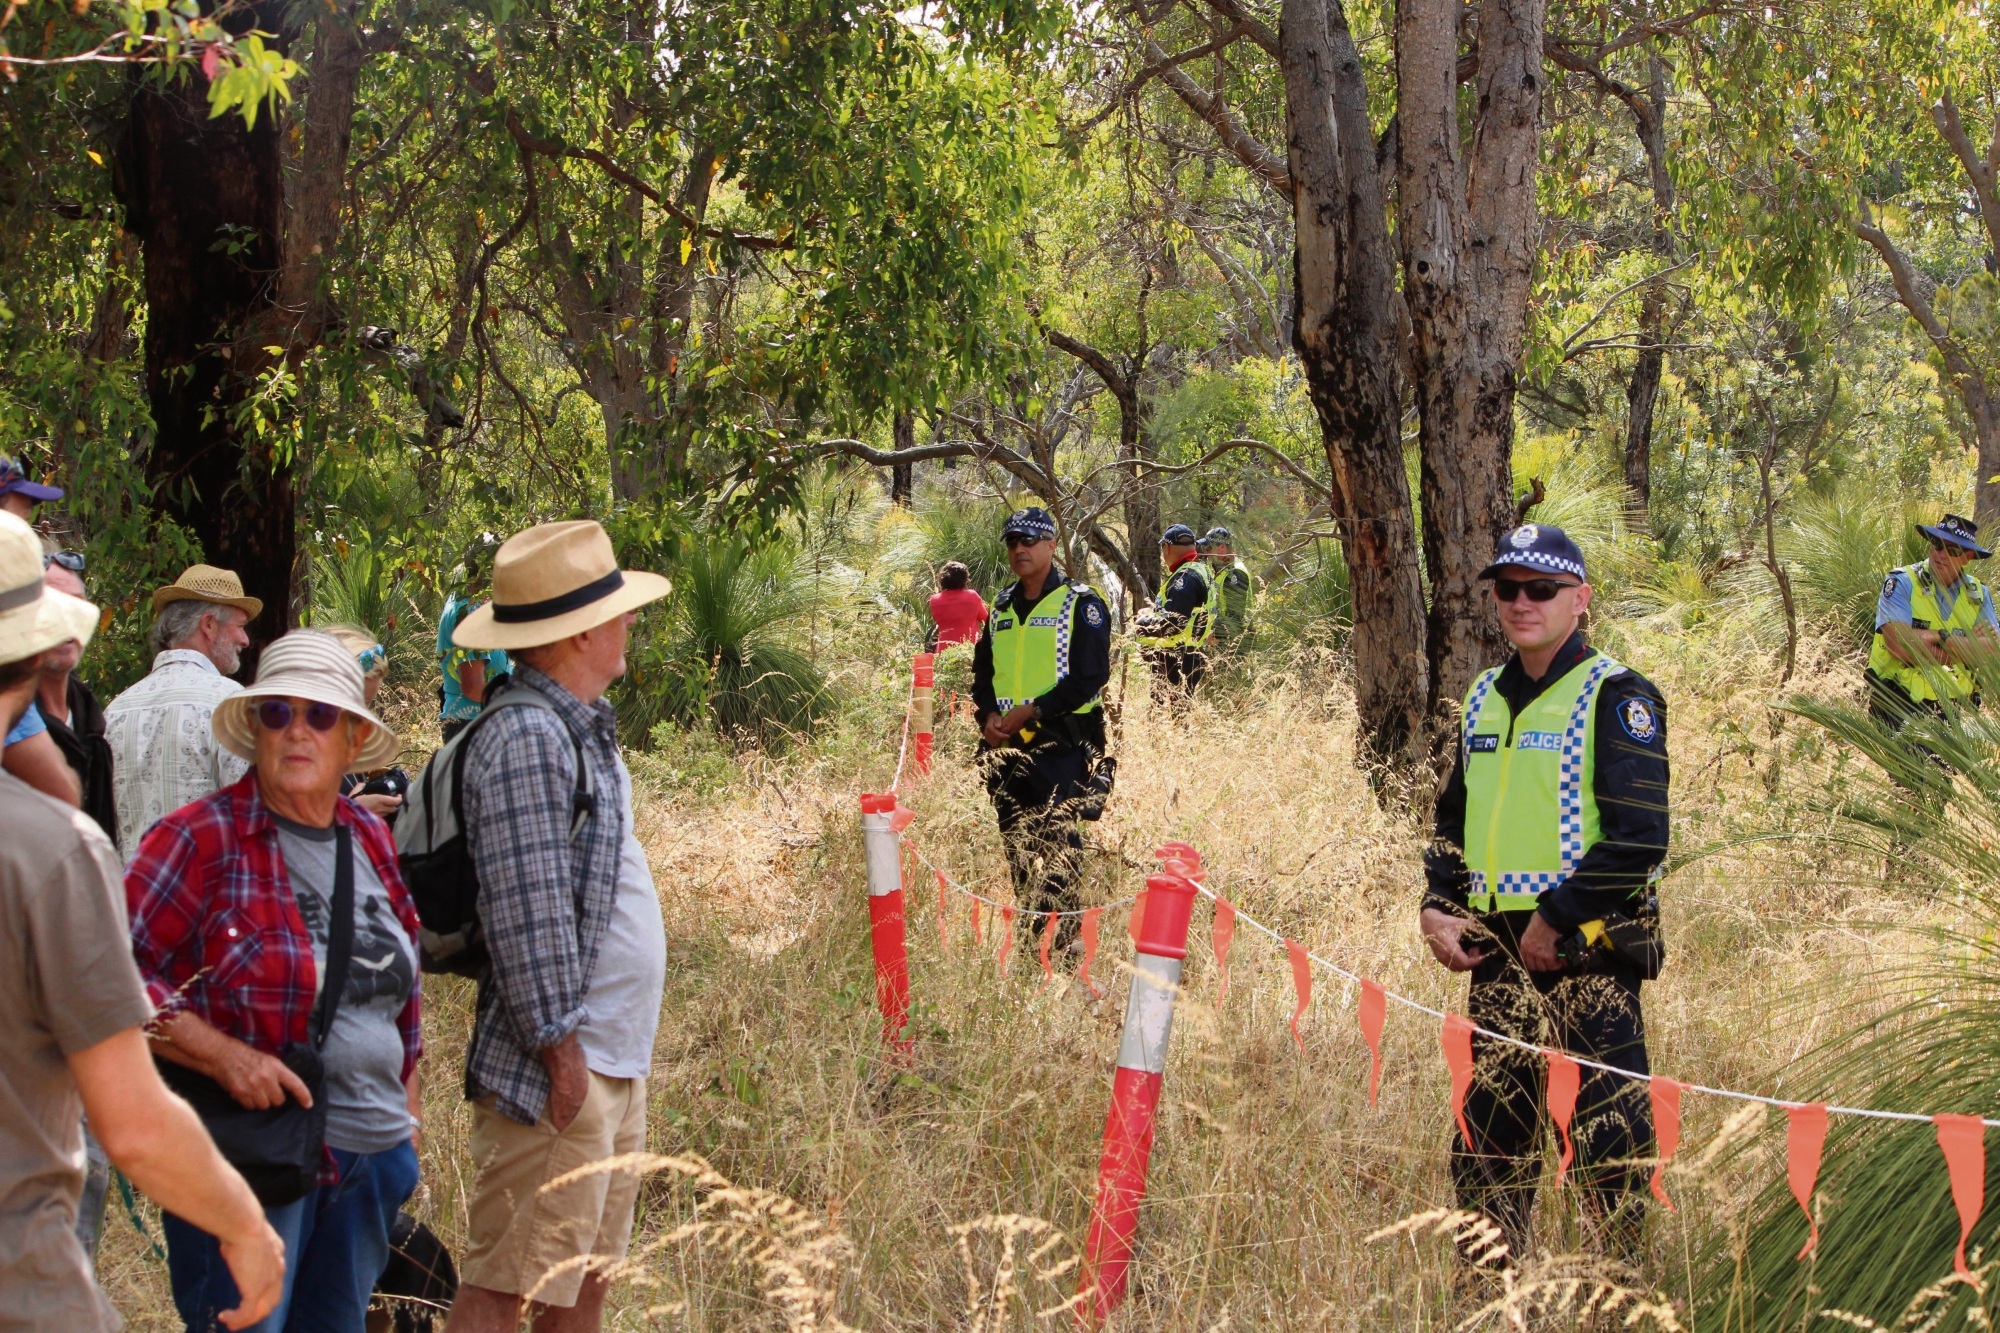 Police keep watch over an exclusion zone where contractors are undertaking preliminary tests for Roe 8. Photo: Bryce Luff